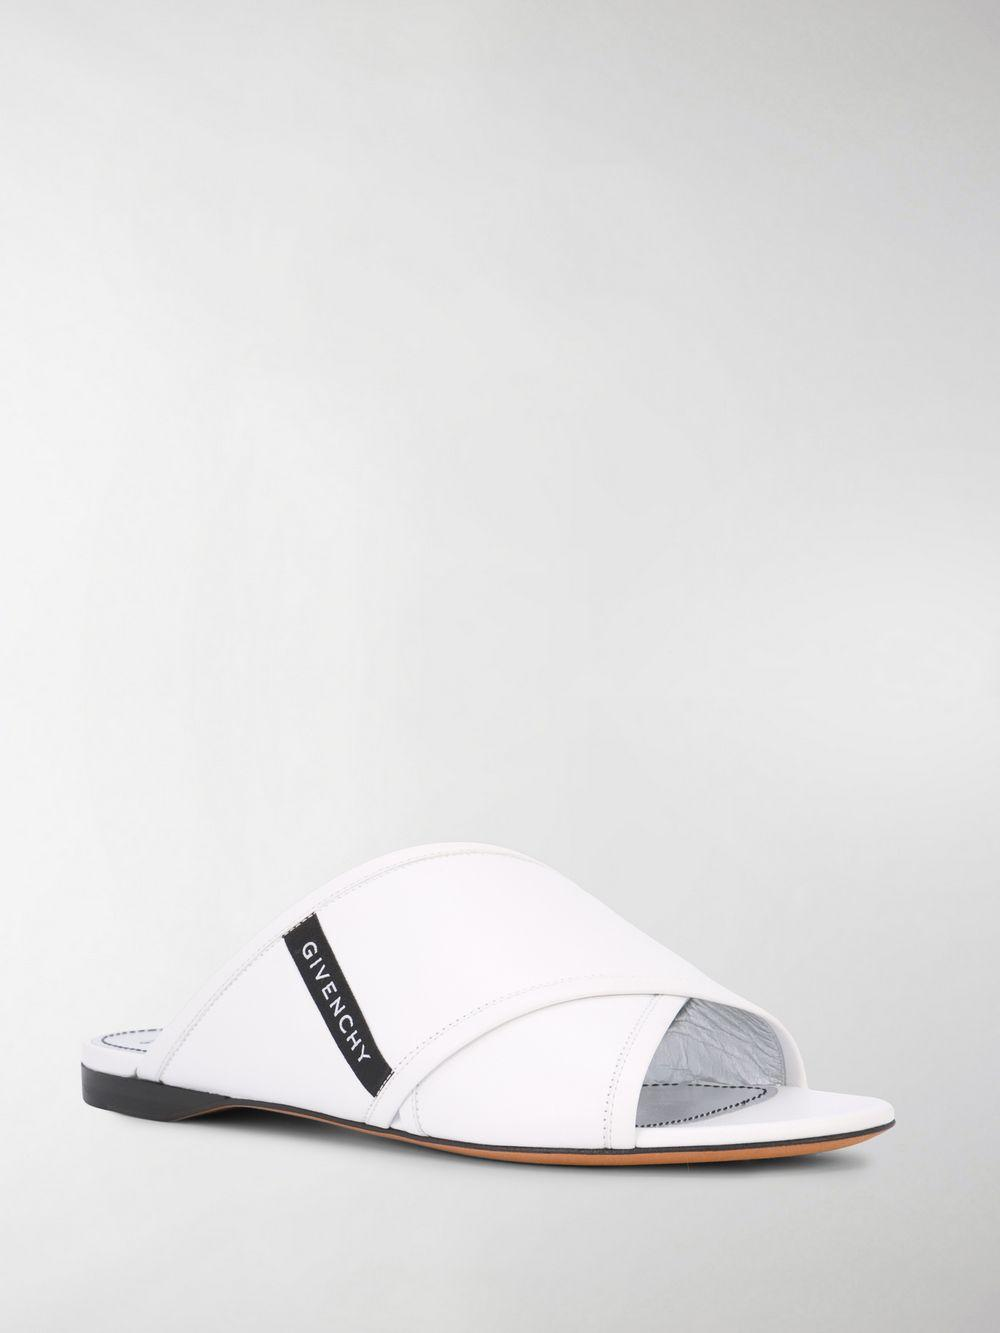 a3dc219b98b4 Givenchy - White Crossover Flat Sandals - Lyst. View fullscreen